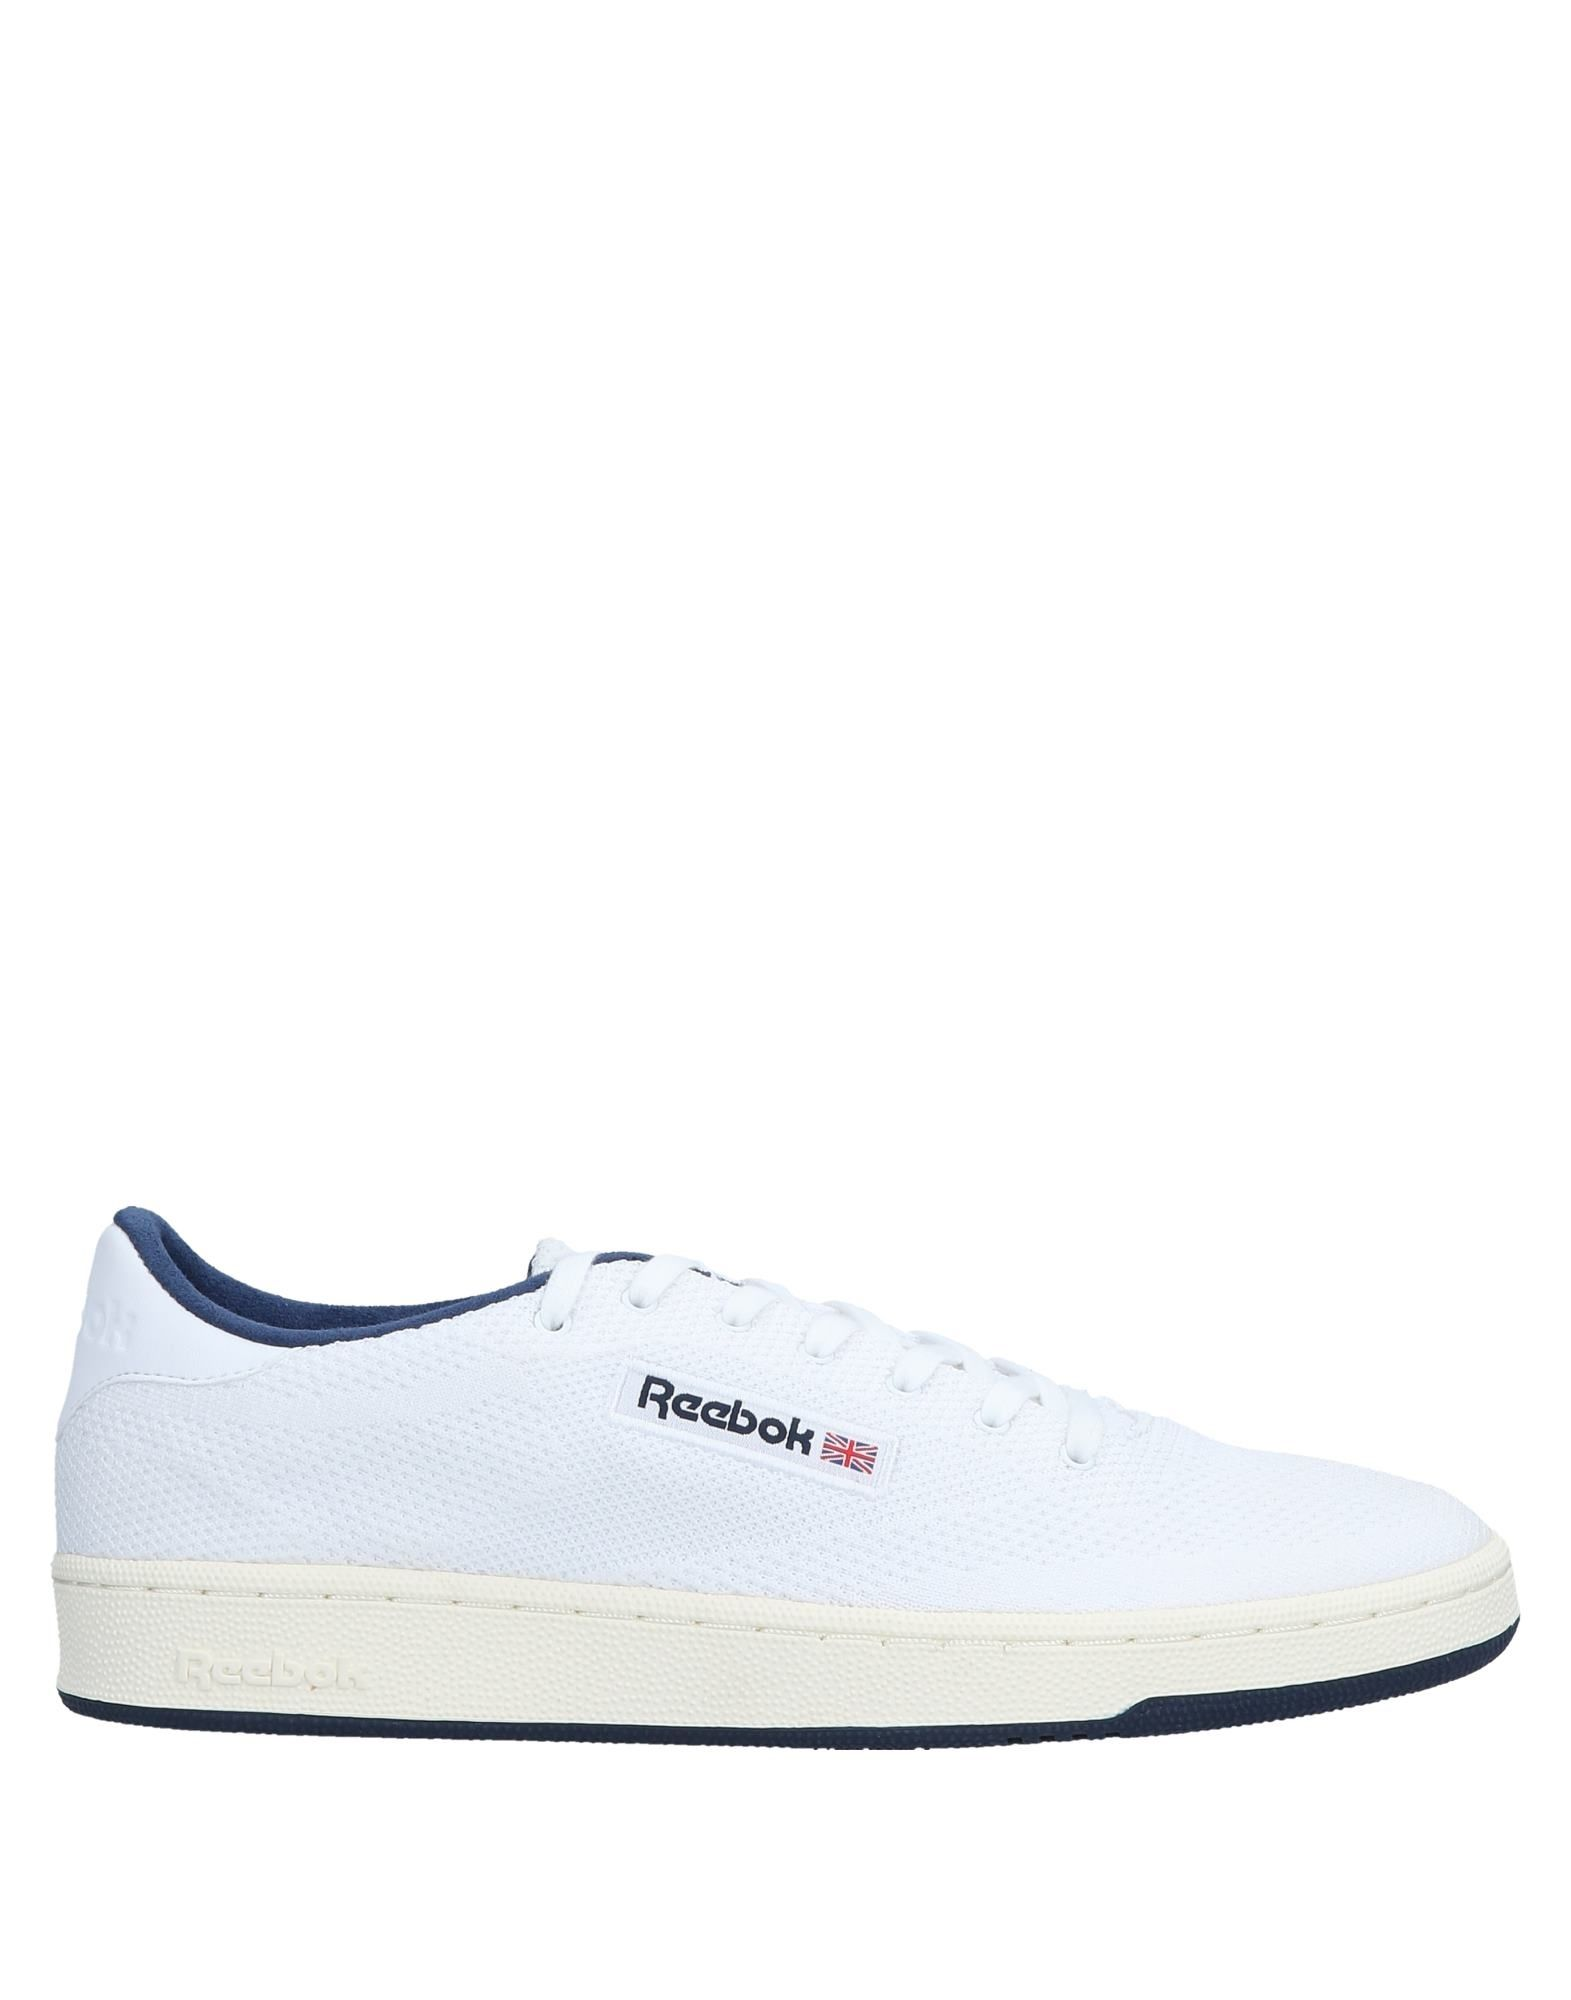 9efd7428d60 Buy reebok shoes for men - Best men's reebok shoes shop - Cools.com